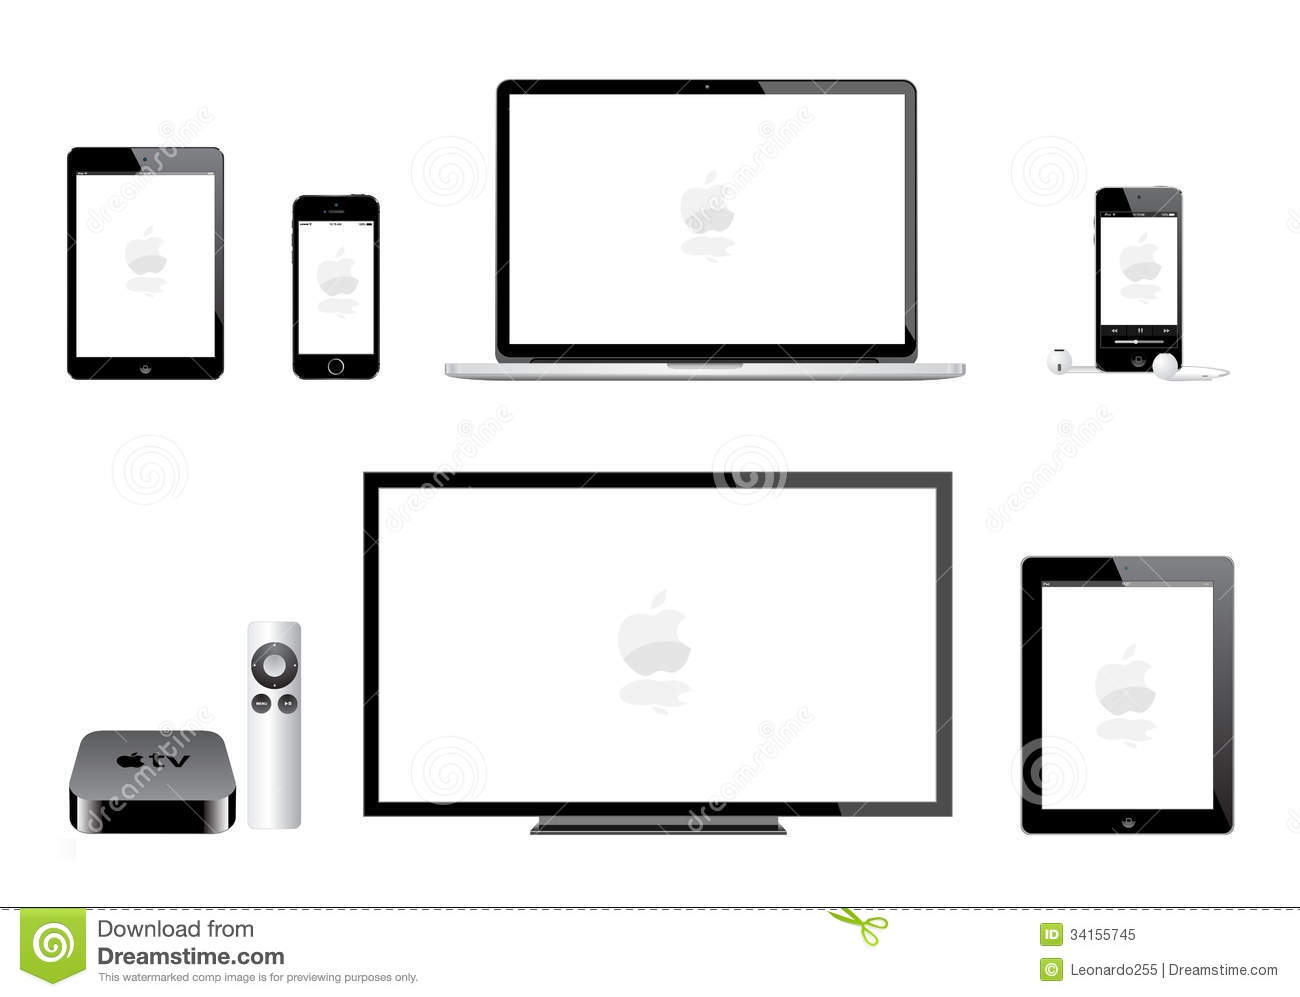 441775044668339299 together with Mewarnai Gambar Kepiting Contoh Gambar Mewarnai in addition 153104 Harp Darp Herp Derp together with Royalty Free Stock Photo Apple Ipad Mini Iphone Ipod Mac Tv Vector Eps Image34155745 additionally Tumblr Backgrounds. on green iphone 4